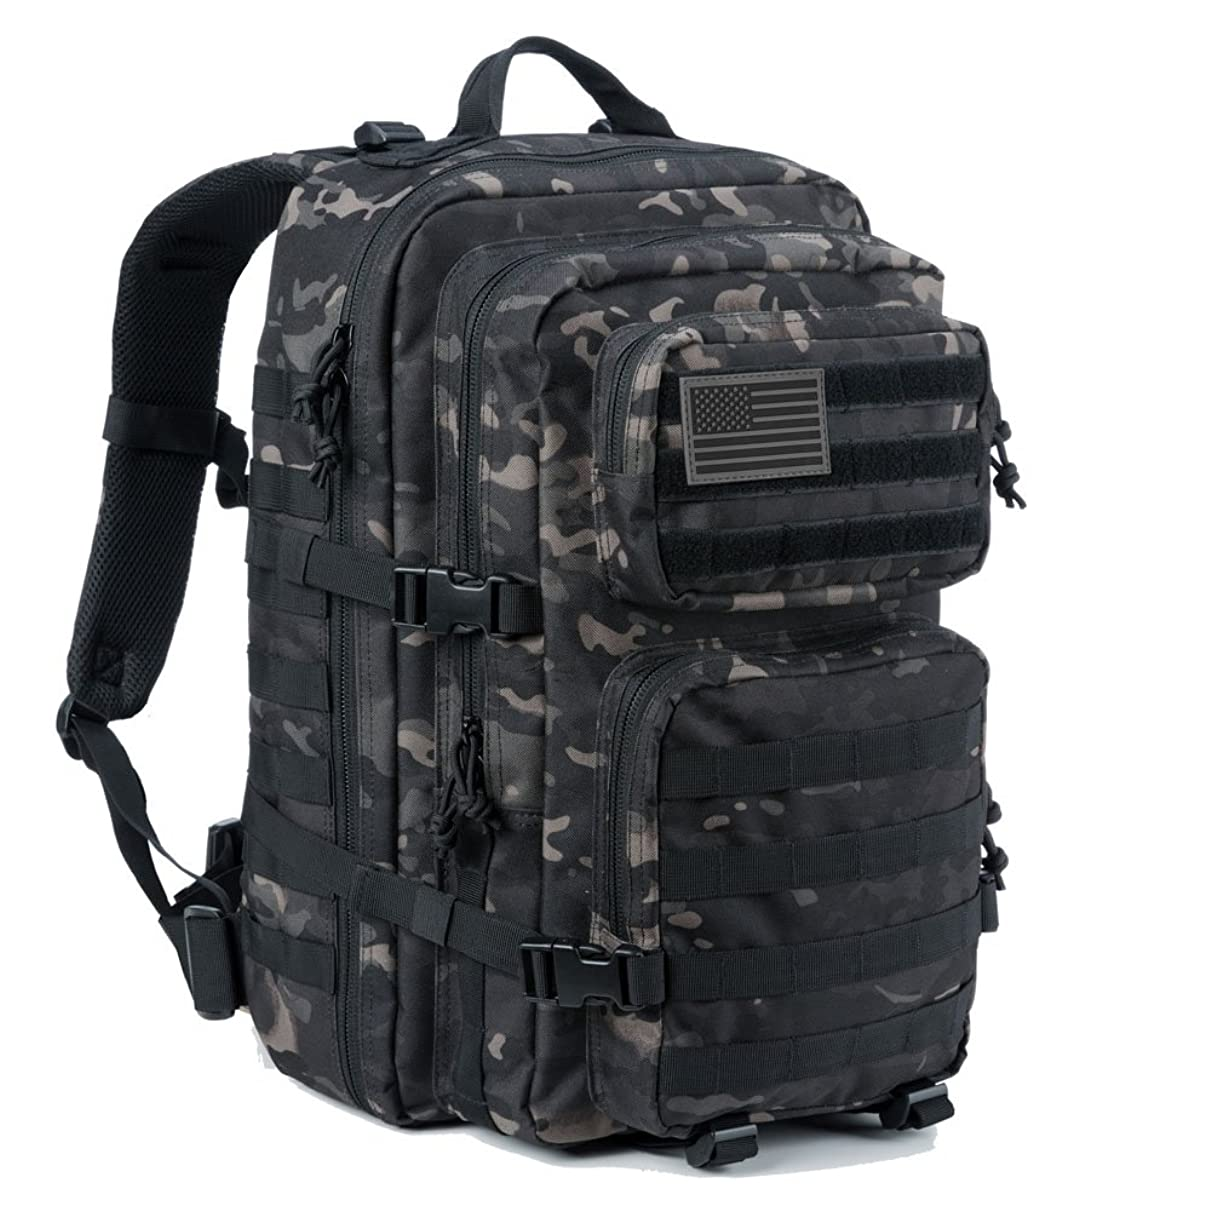 REEBOW GEAR Military Tactical Backpack Large Army 3 Day Assault Pack Molle Bug Out Bag Backpack Rucksacks for Outdoor Hiking Camping Trekking Hunting